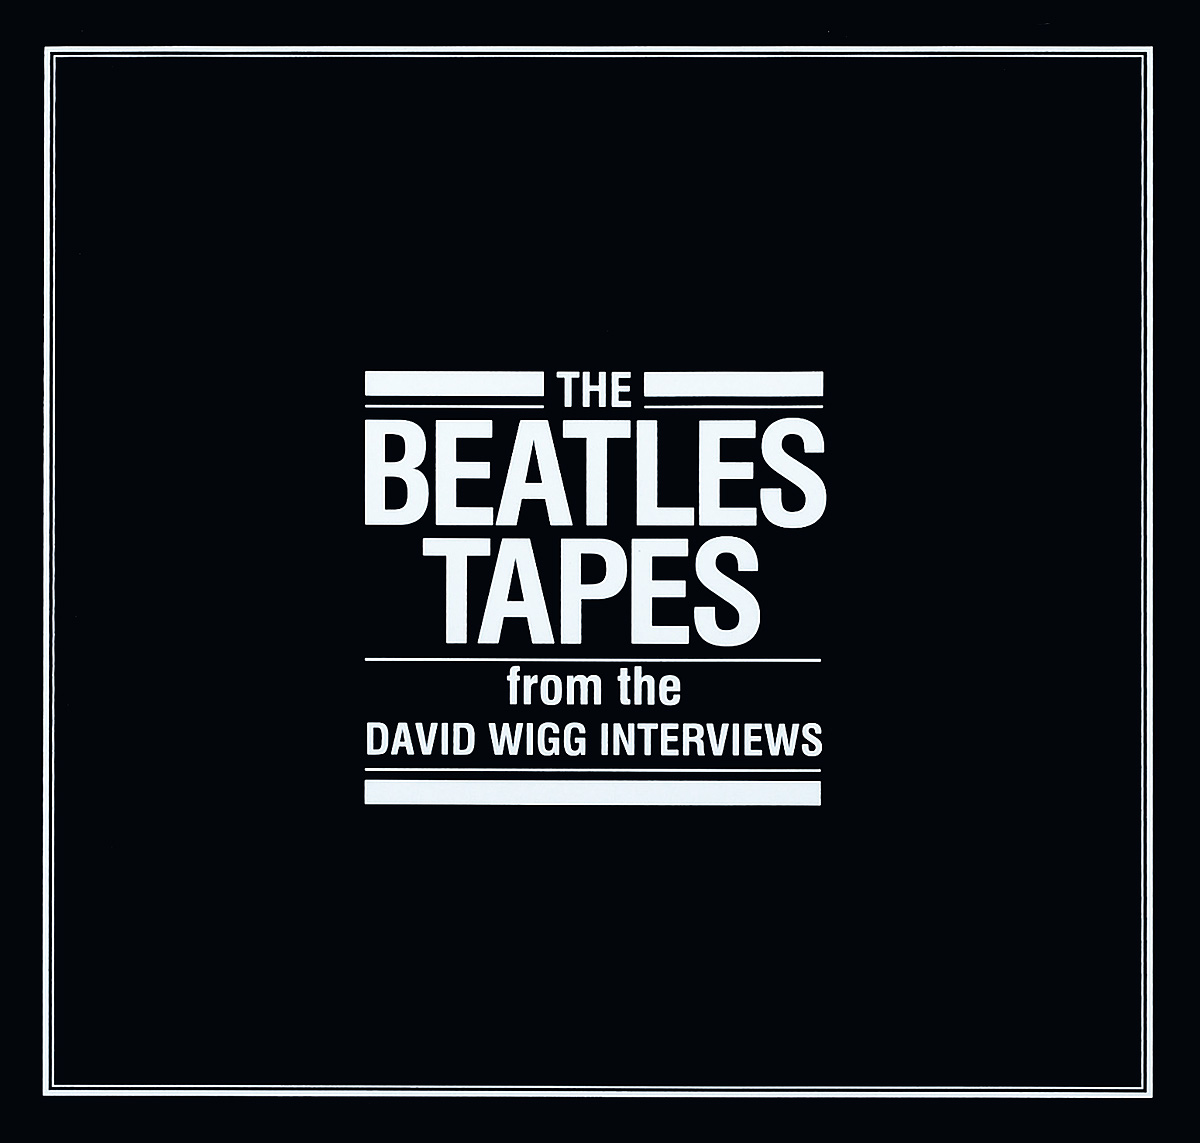 цена на The Beatles The Beatles. The Beatles Tapes (2 CD)